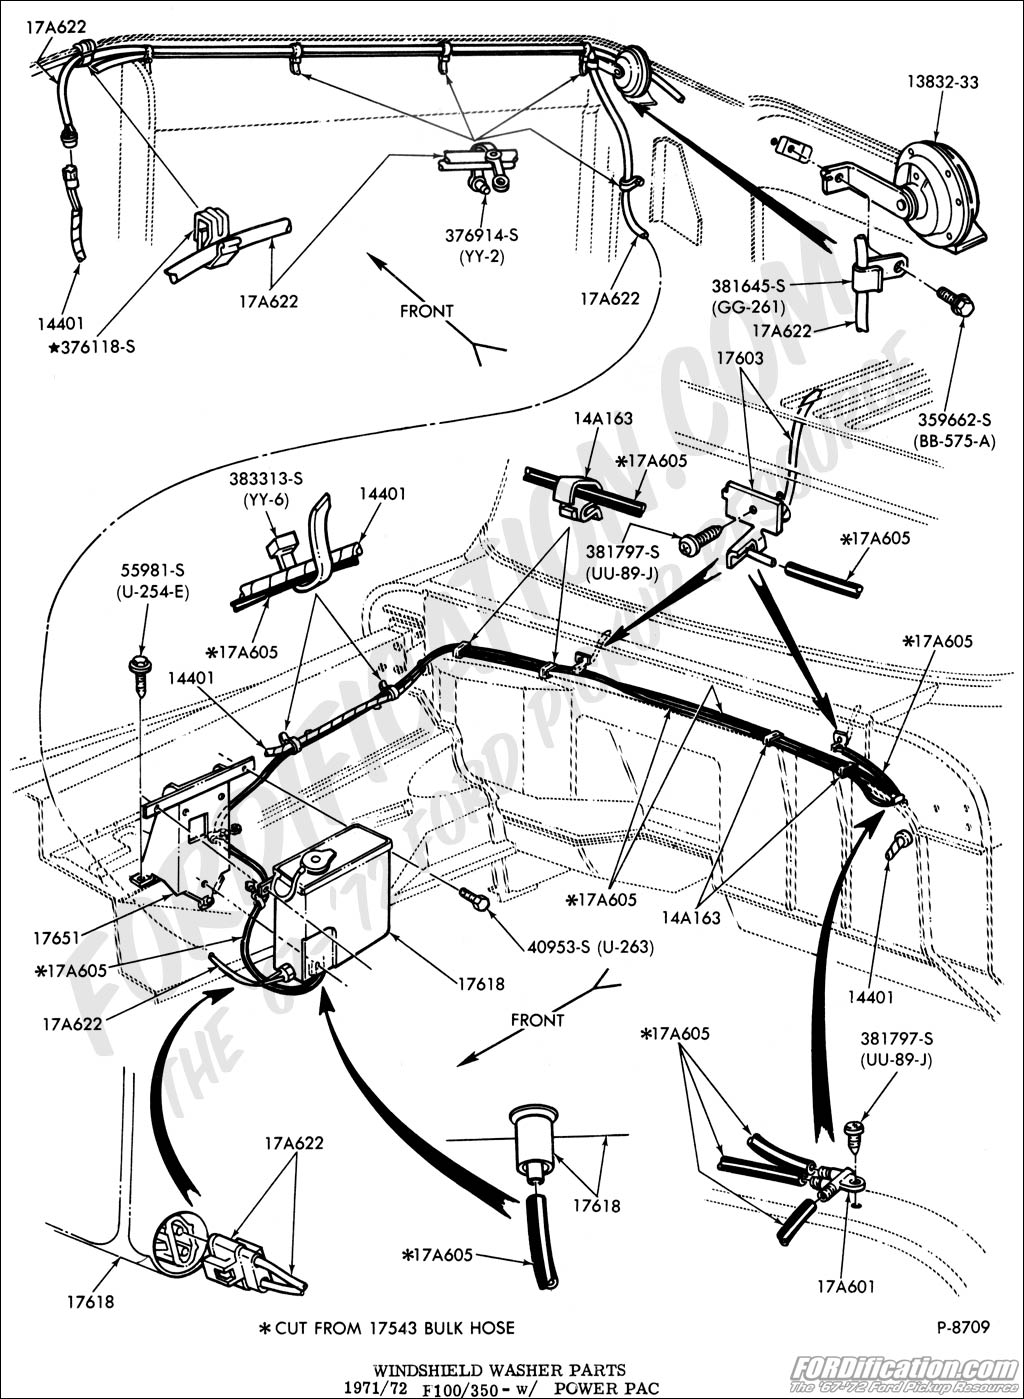 1971 Mustang Wiring Diagram And Hose Archive Of Automotive Nova Windshield Washer Diagrams Ford Truck Technical Drawings Schematics Section I Rh Fordification Com